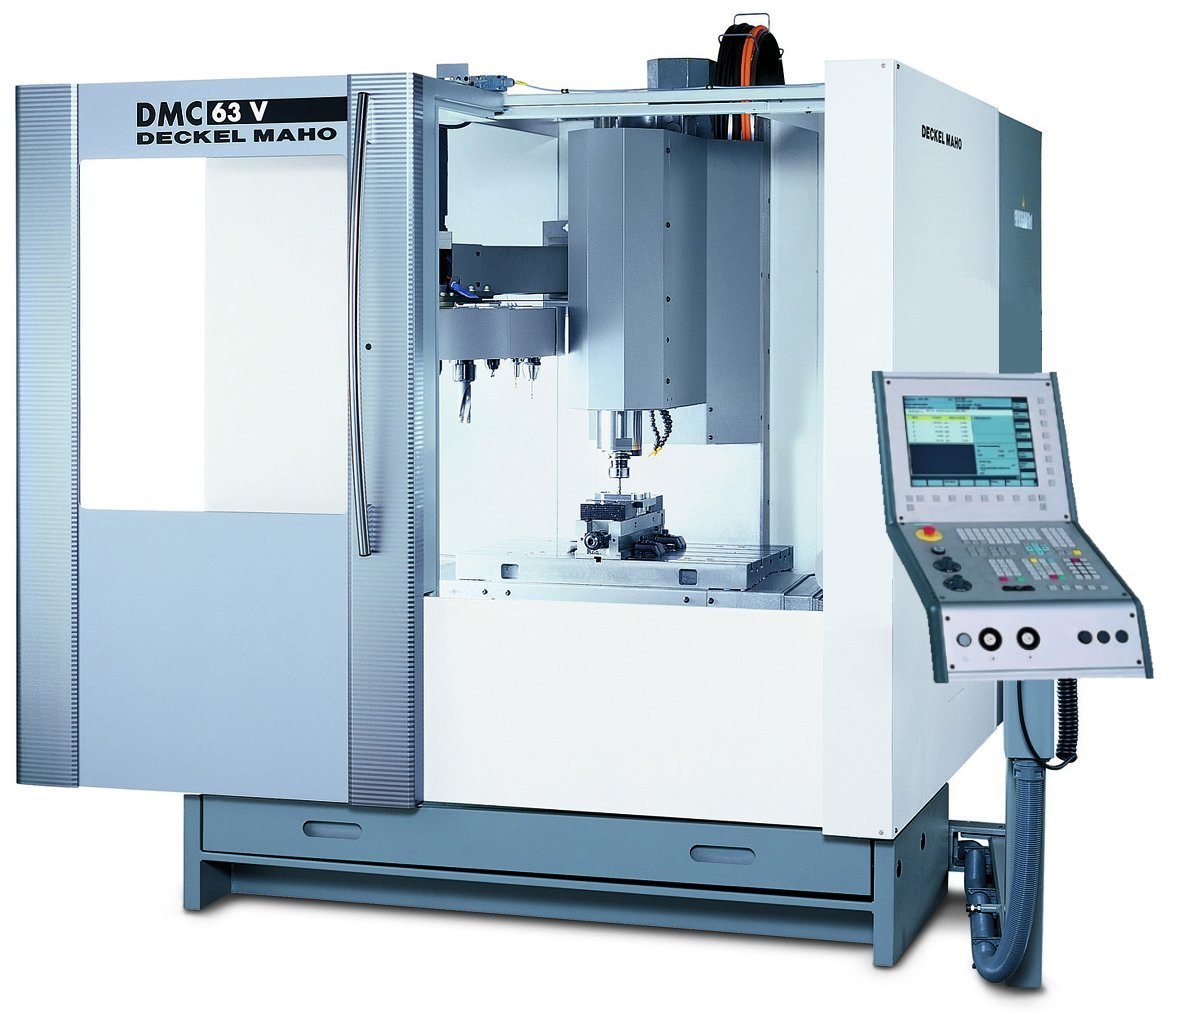 Used deckel maho dmc63v cnc milling machines for sale for Deckel maho geretsried